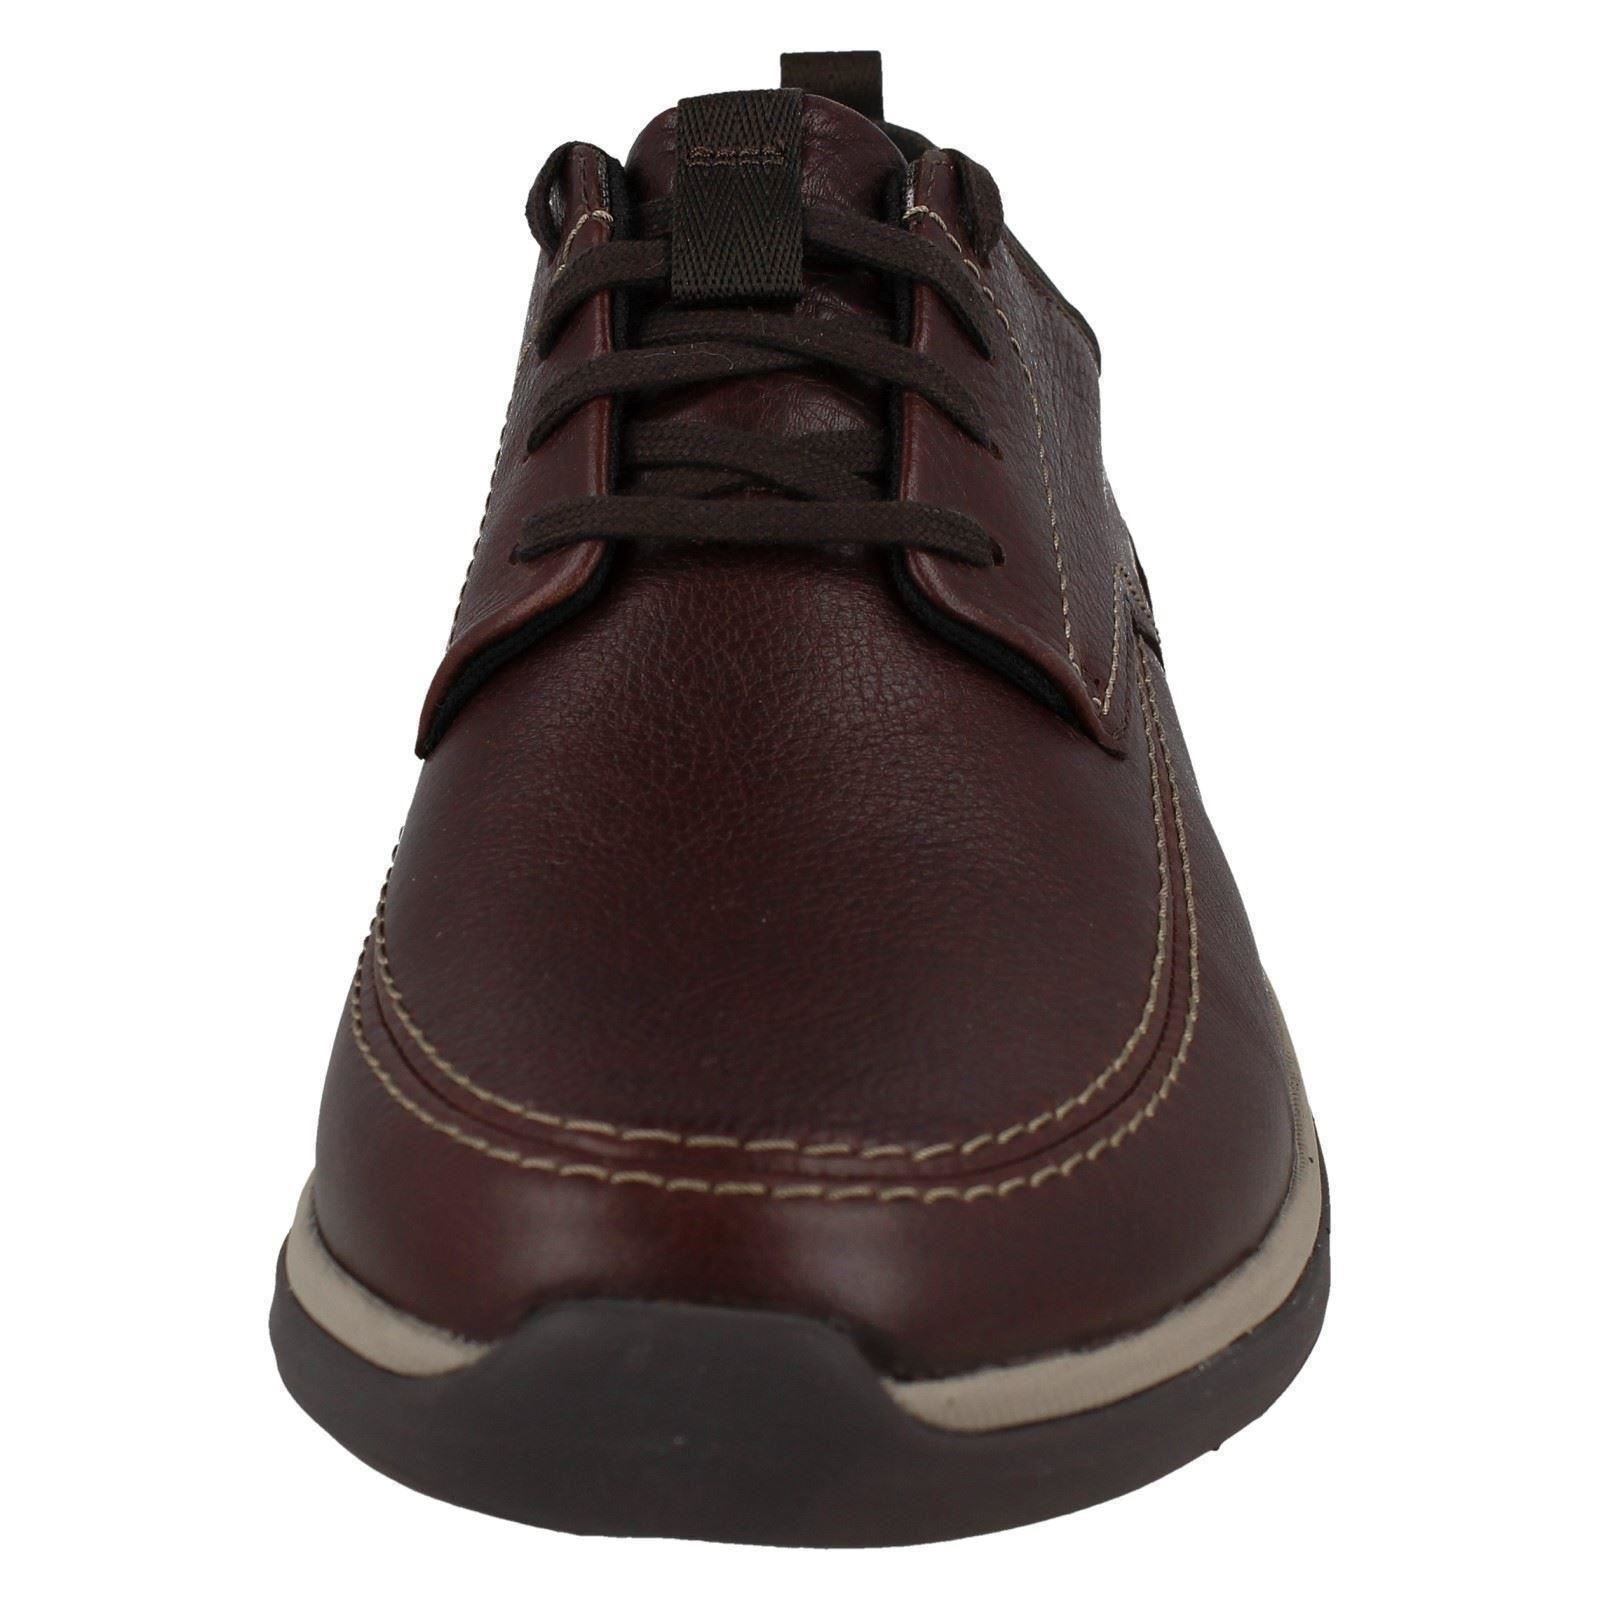 Mens-Unstructured-by-Clarks-Lace-Up-Shoes-039-Garratt-Street-039 thumbnail 18